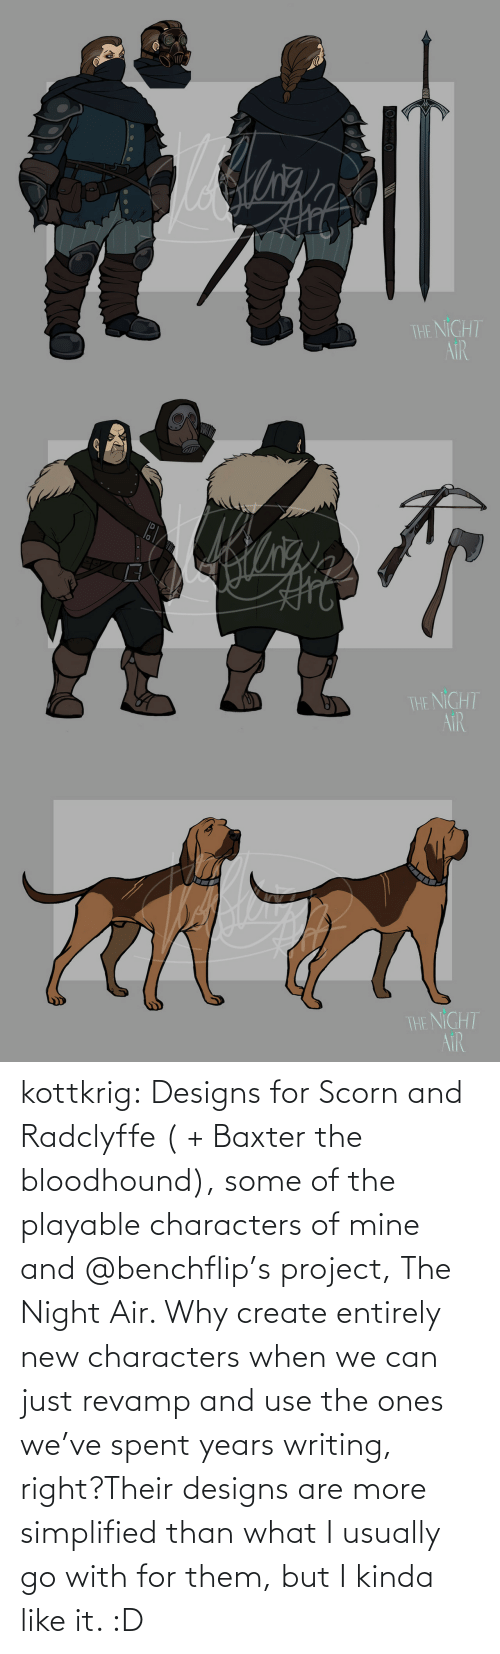 Spent: kottkrig:  Designs for Scorn and Radclyffe ( + Baxter the bloodhound), some of the playable characters of mine and @benchflip's project, The Night Air. Why create entirely new characters when we can just revamp and use the ones we've spent years writing, right?Their designs are more simplified than what I usually go with for them, but I kinda like it. :D